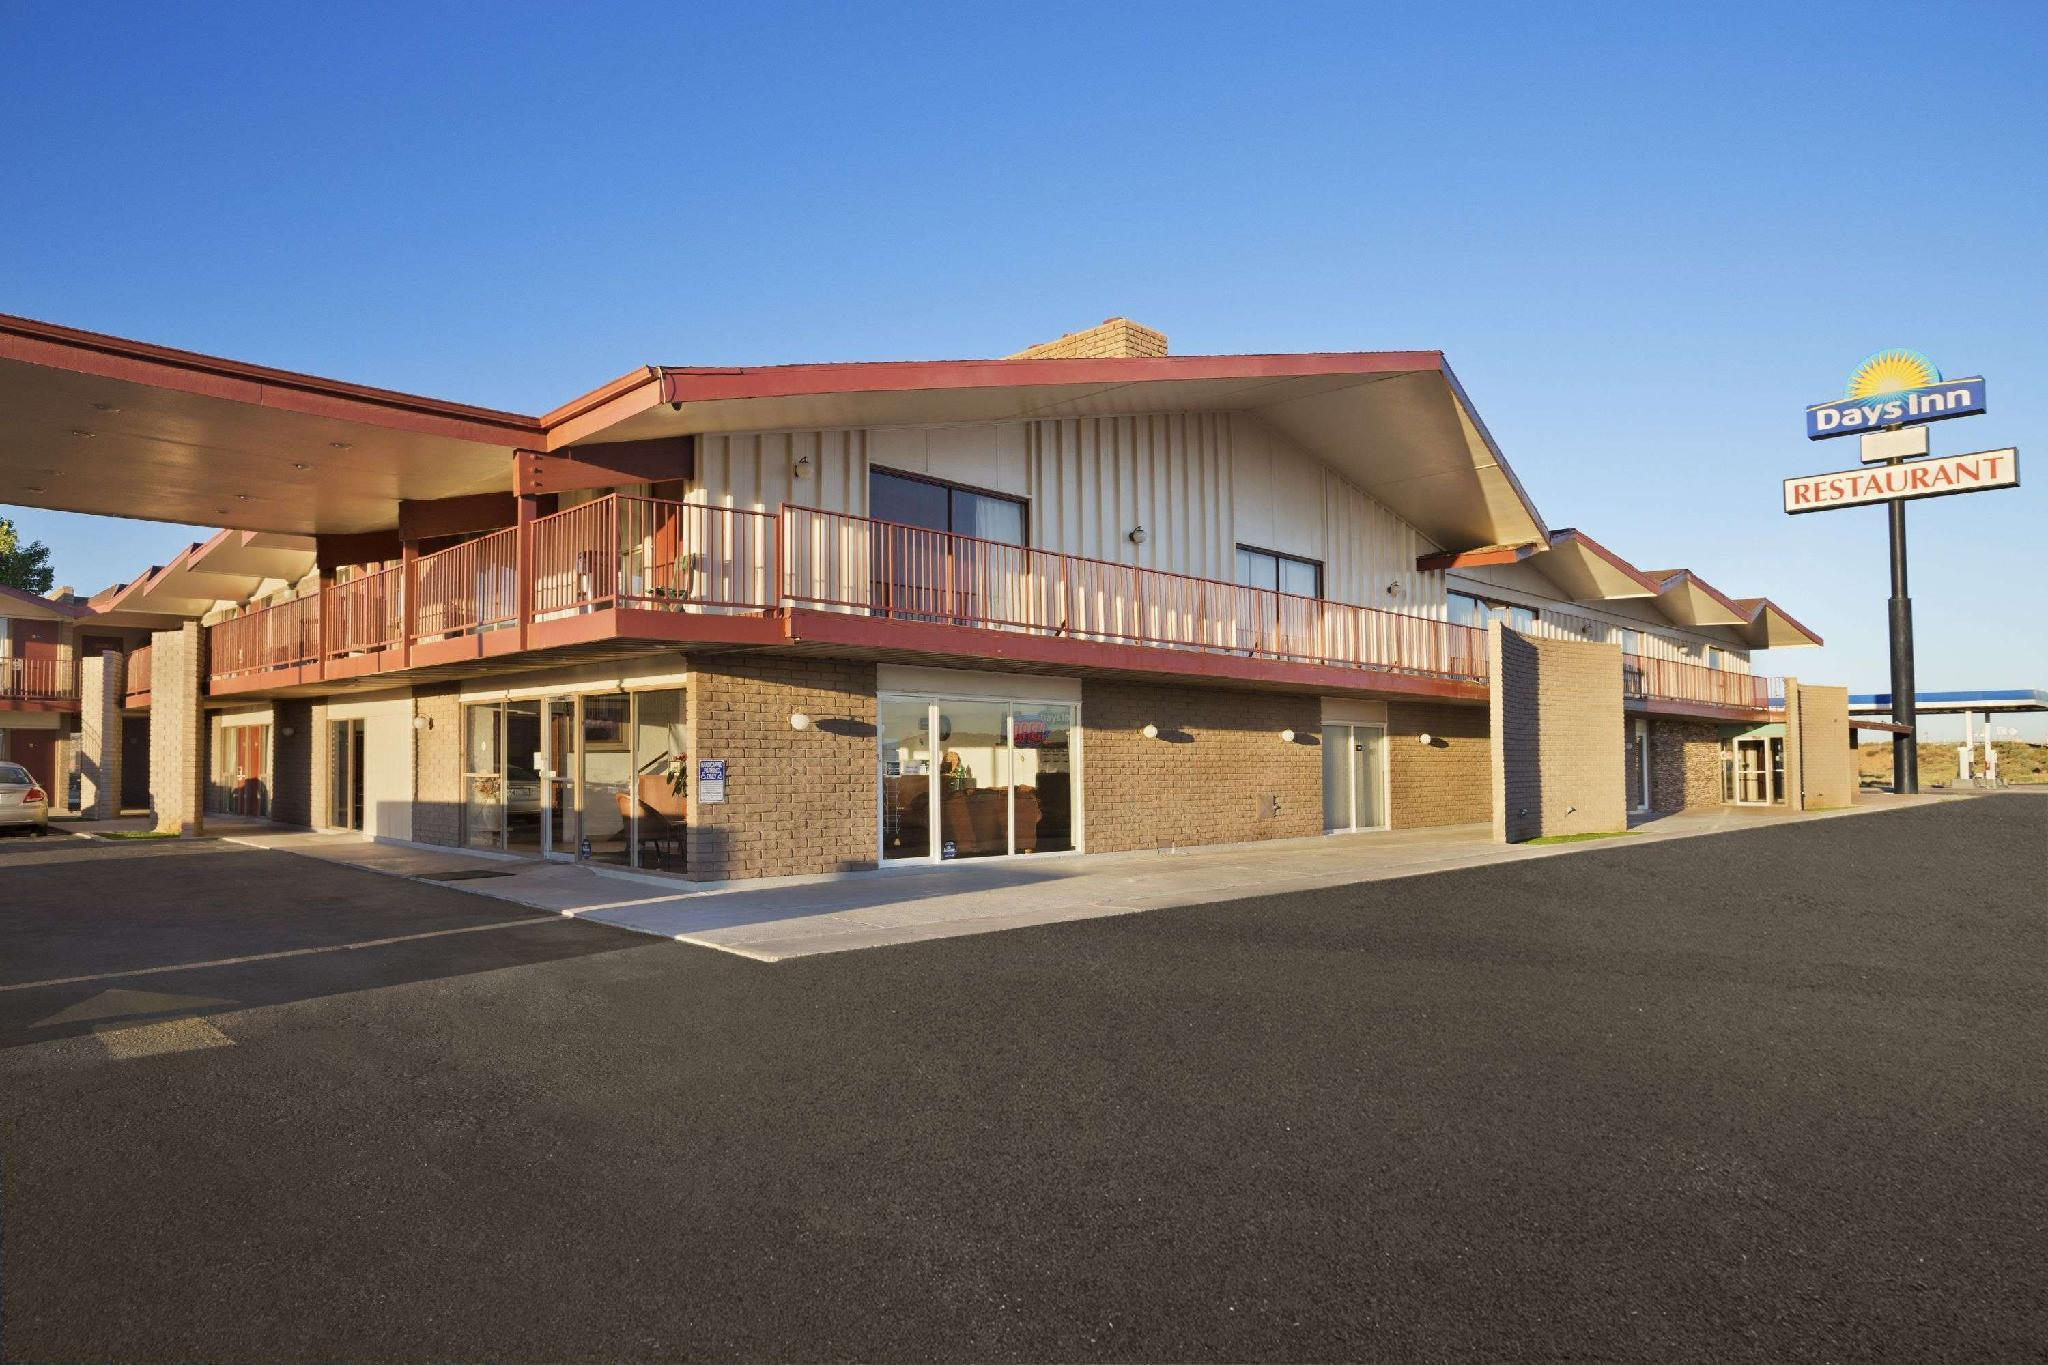 Days Inn by Wyndham Chambers Near the Petrified Forest East, Apache